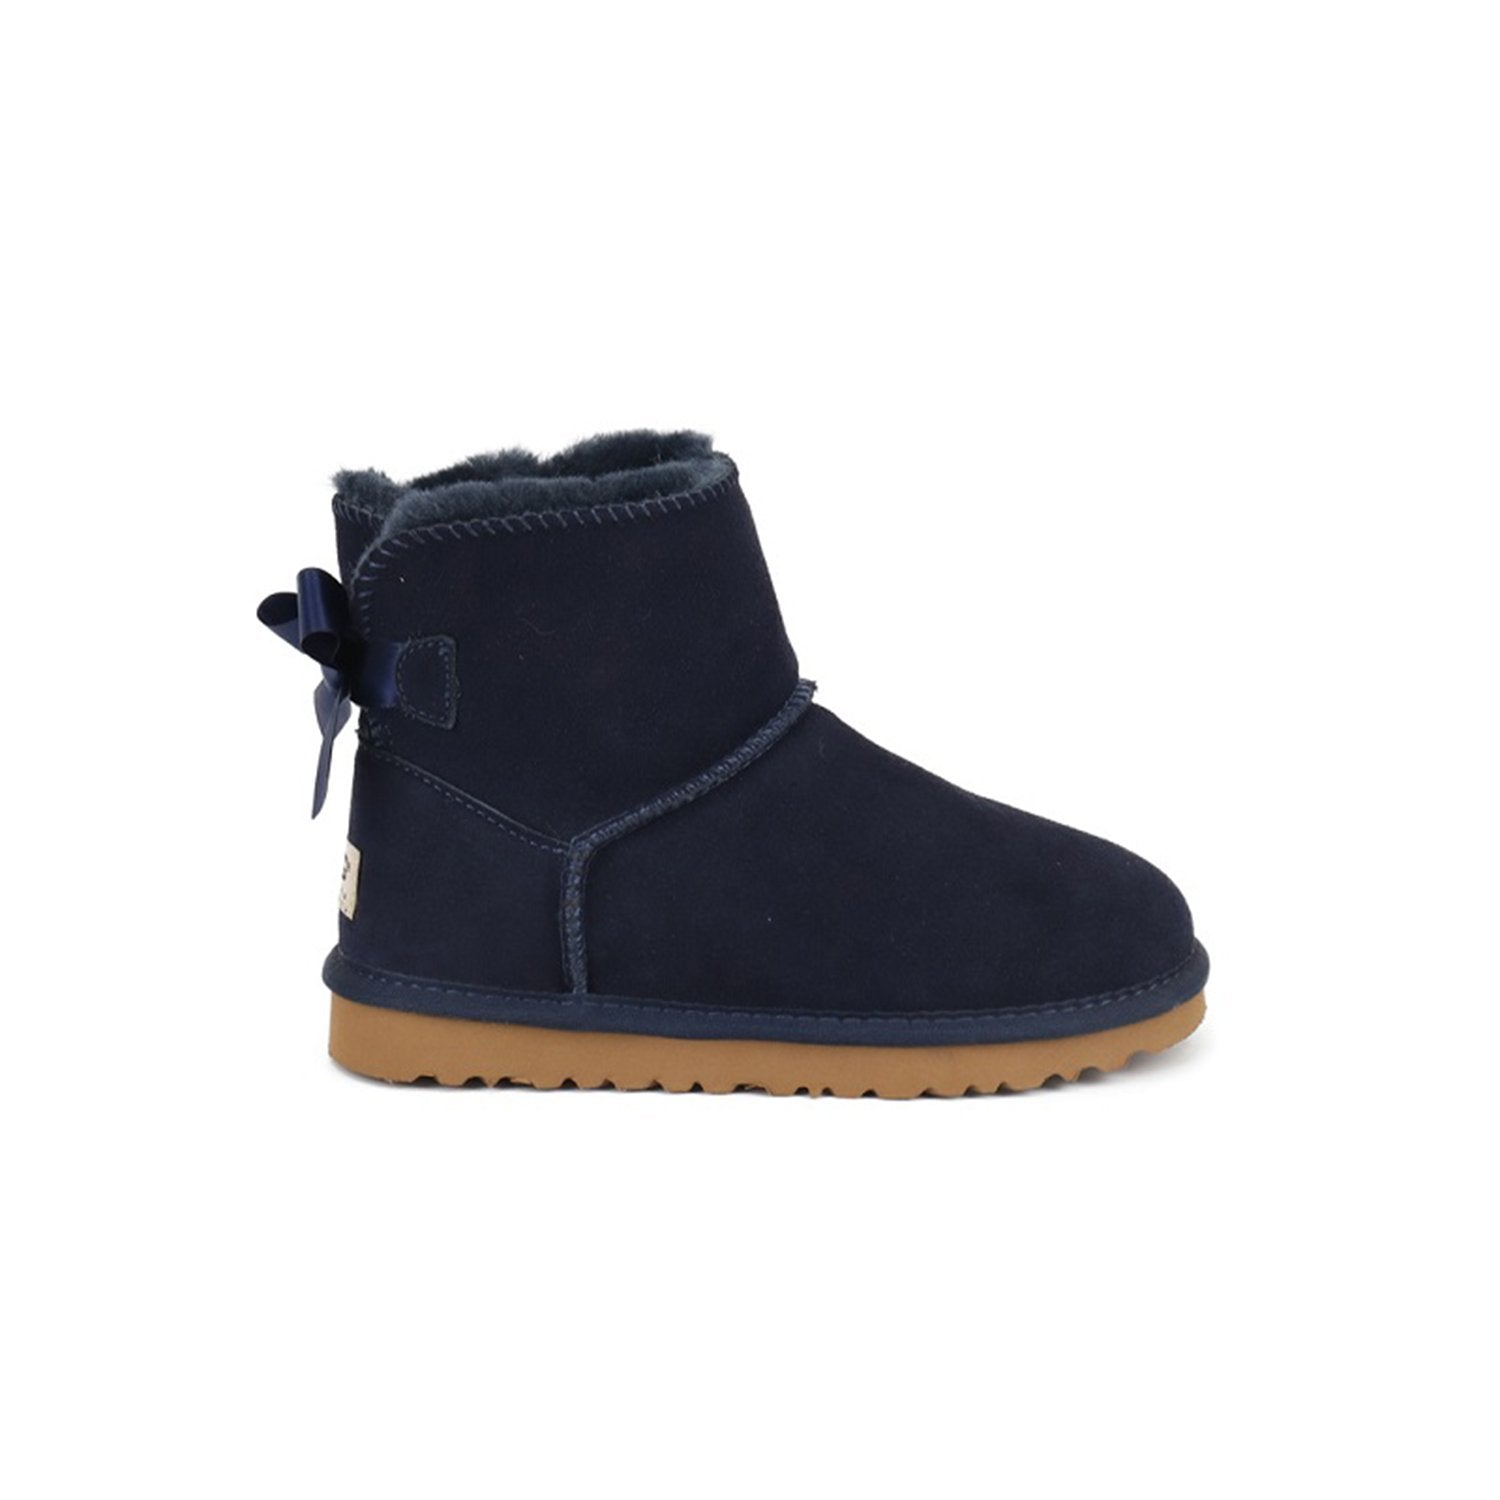 Low-tube Bow-knot Warm Cotton Leather Snow Boots (Dark Color)